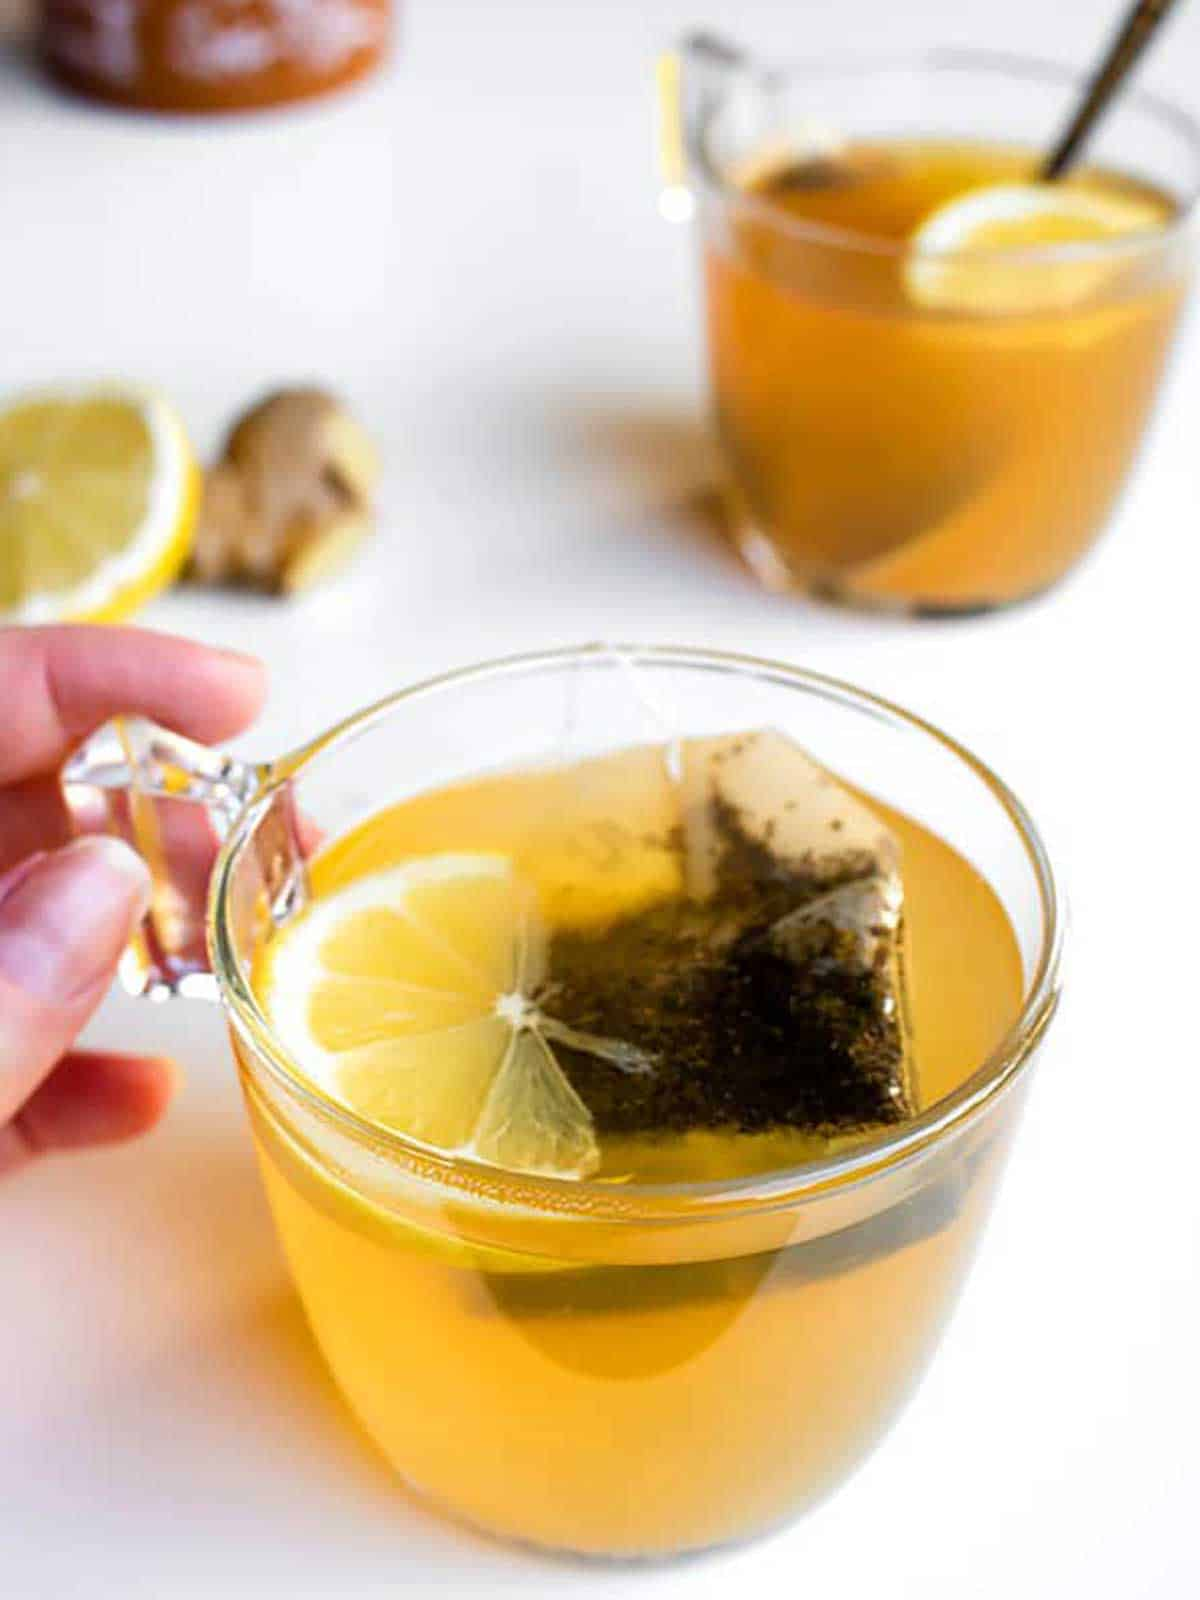 Glass mug with hand holding onto handle filled with tea and floating lemon slice.  In background another cup of tea, ginger and lemon.